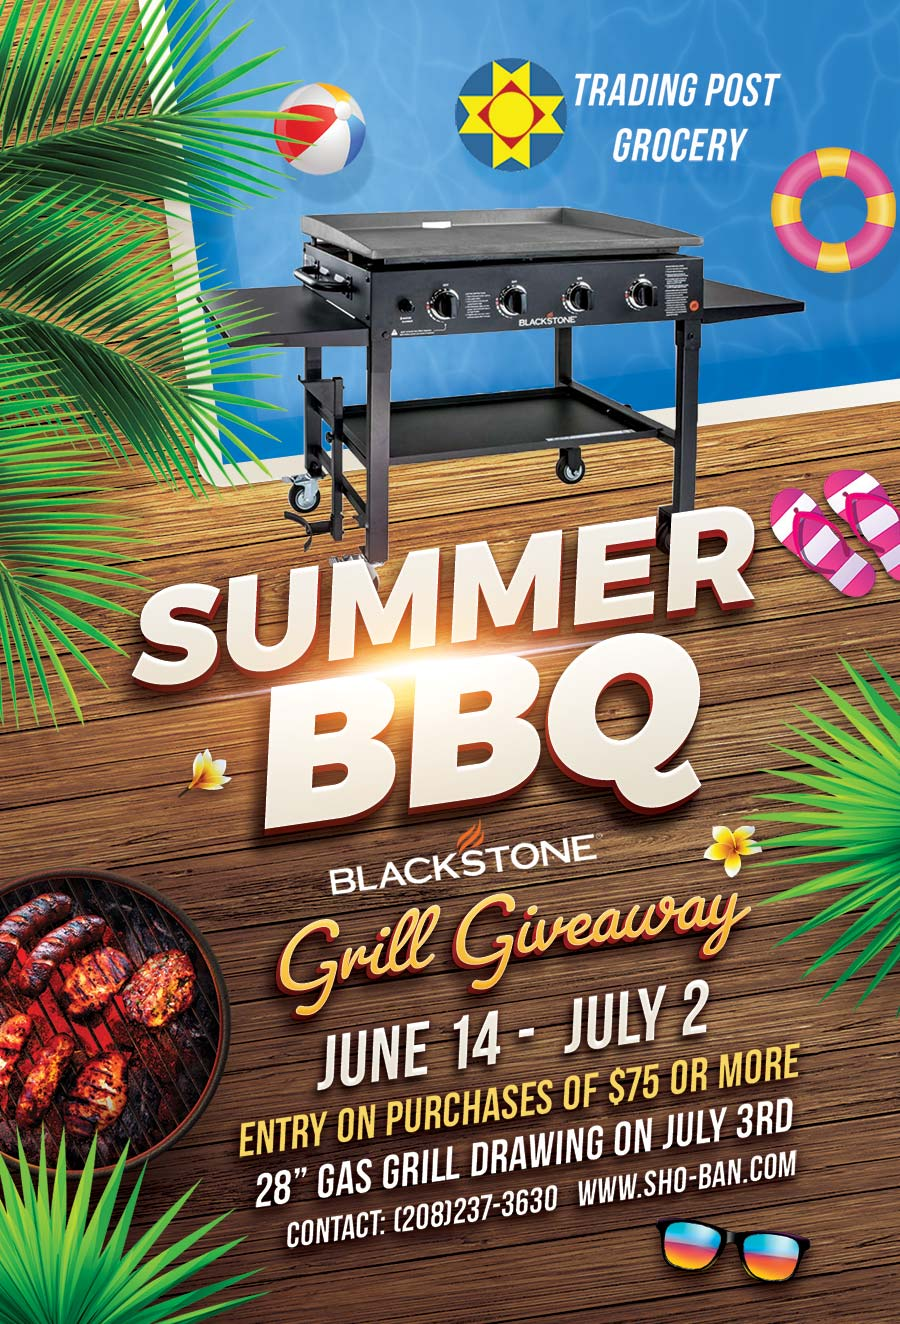 Blackstone Grill Giveaway Summer 2021